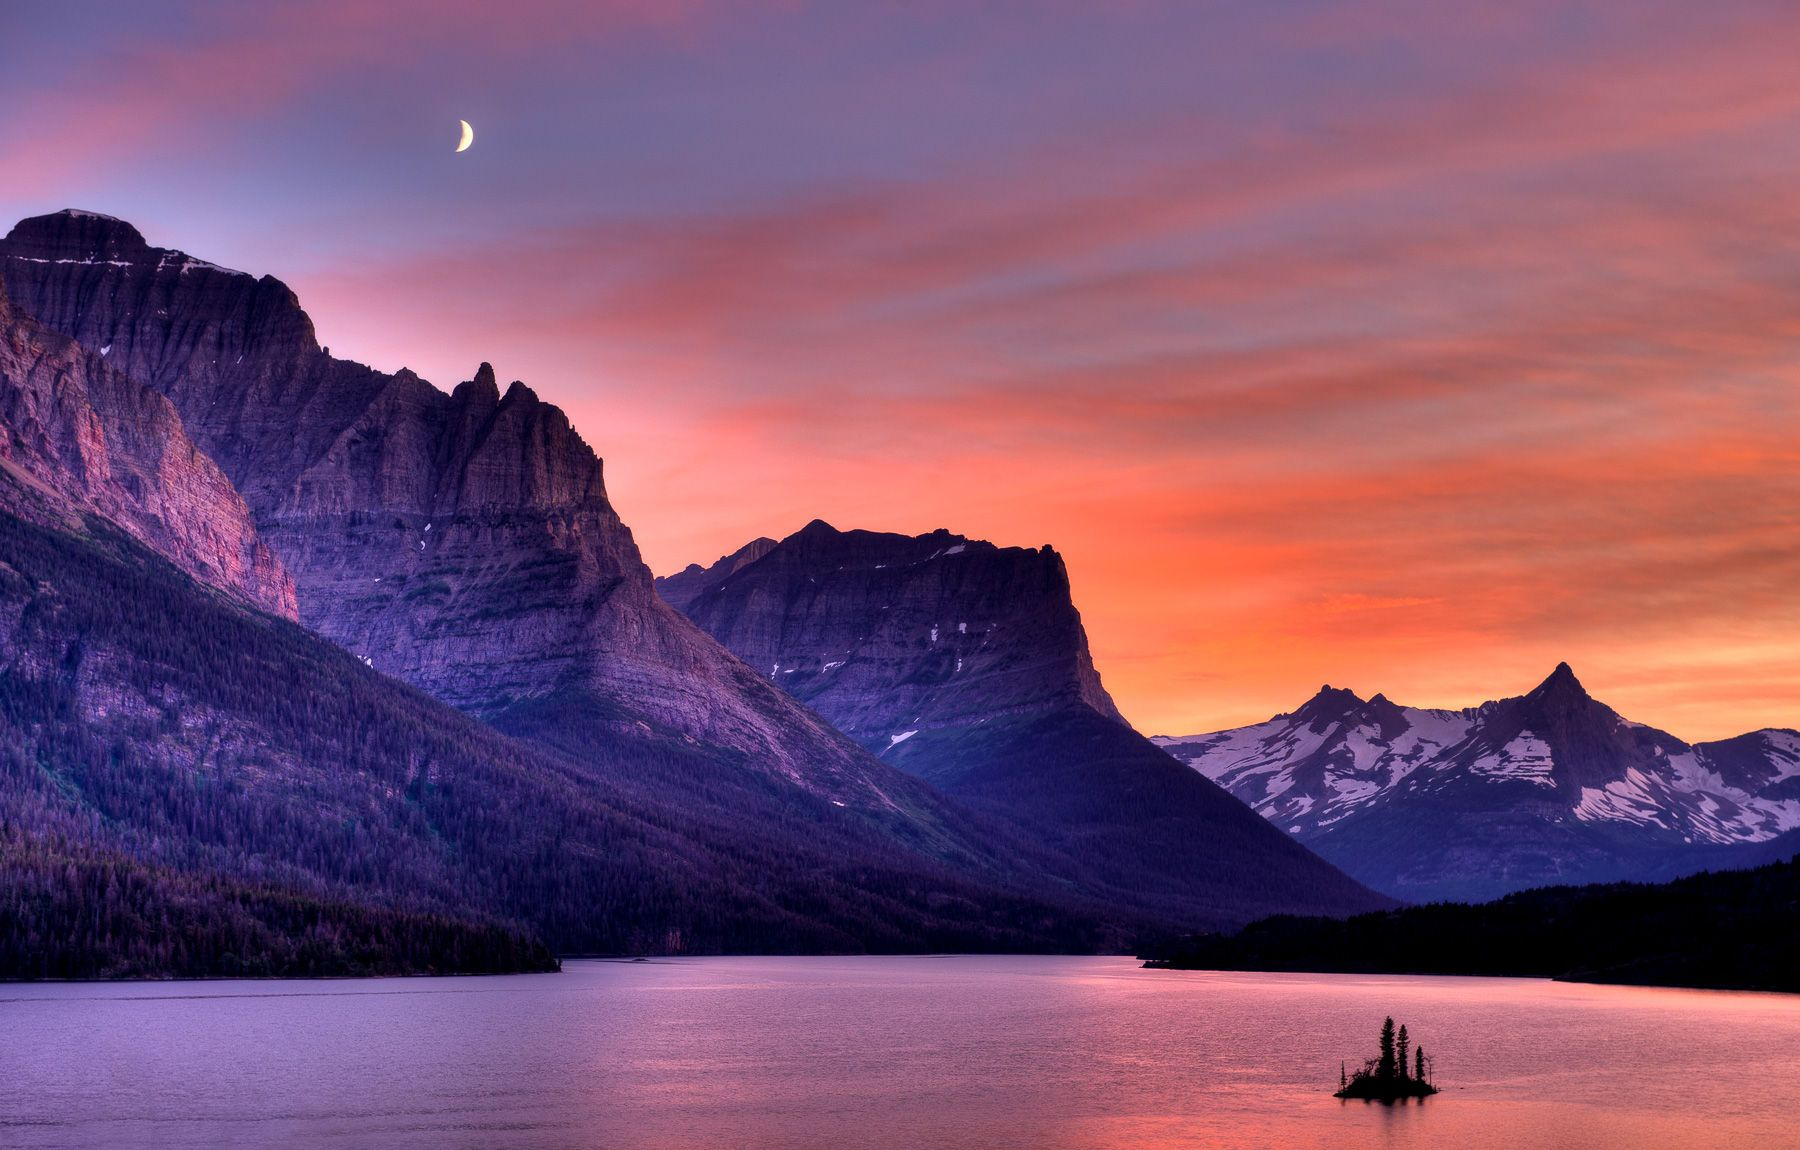 Cloudy Sunset and Moon over Saint Mary Lake